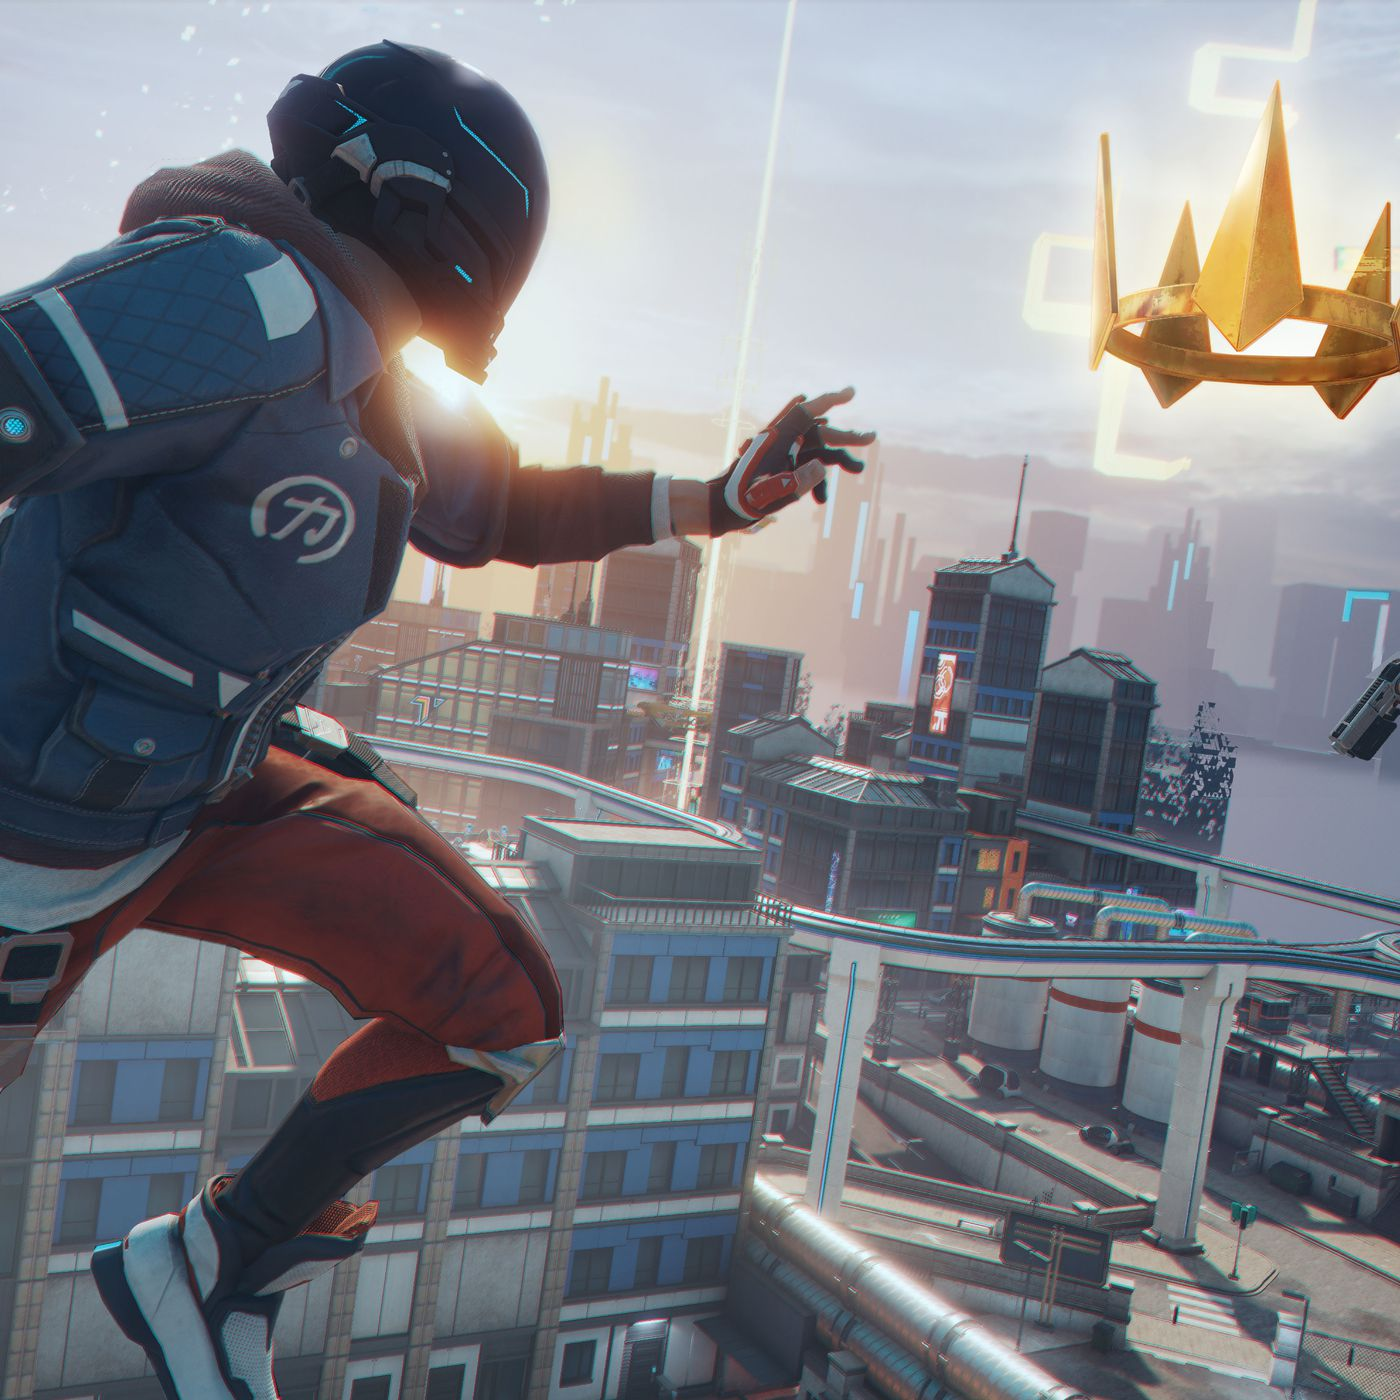 Ubisoft S Hyper Scape Is A Fast Chaotic Battle Royale From The